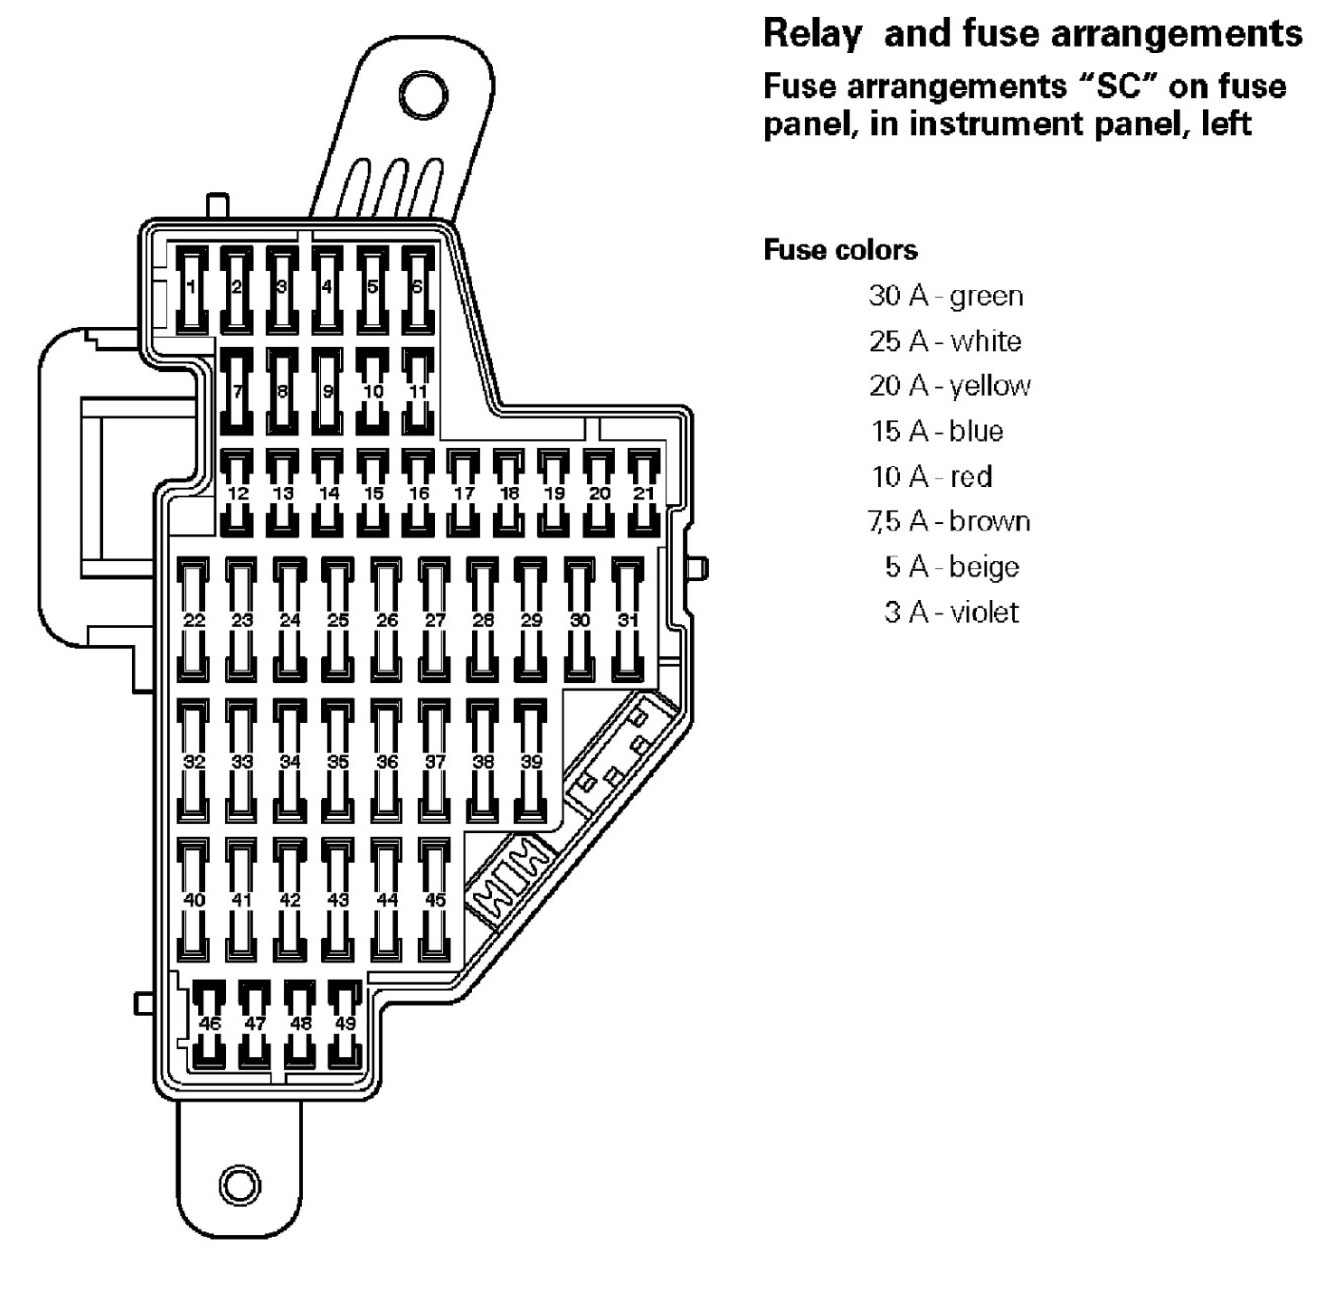 2009 Vw Jetta Interior Fuse Box Diagram